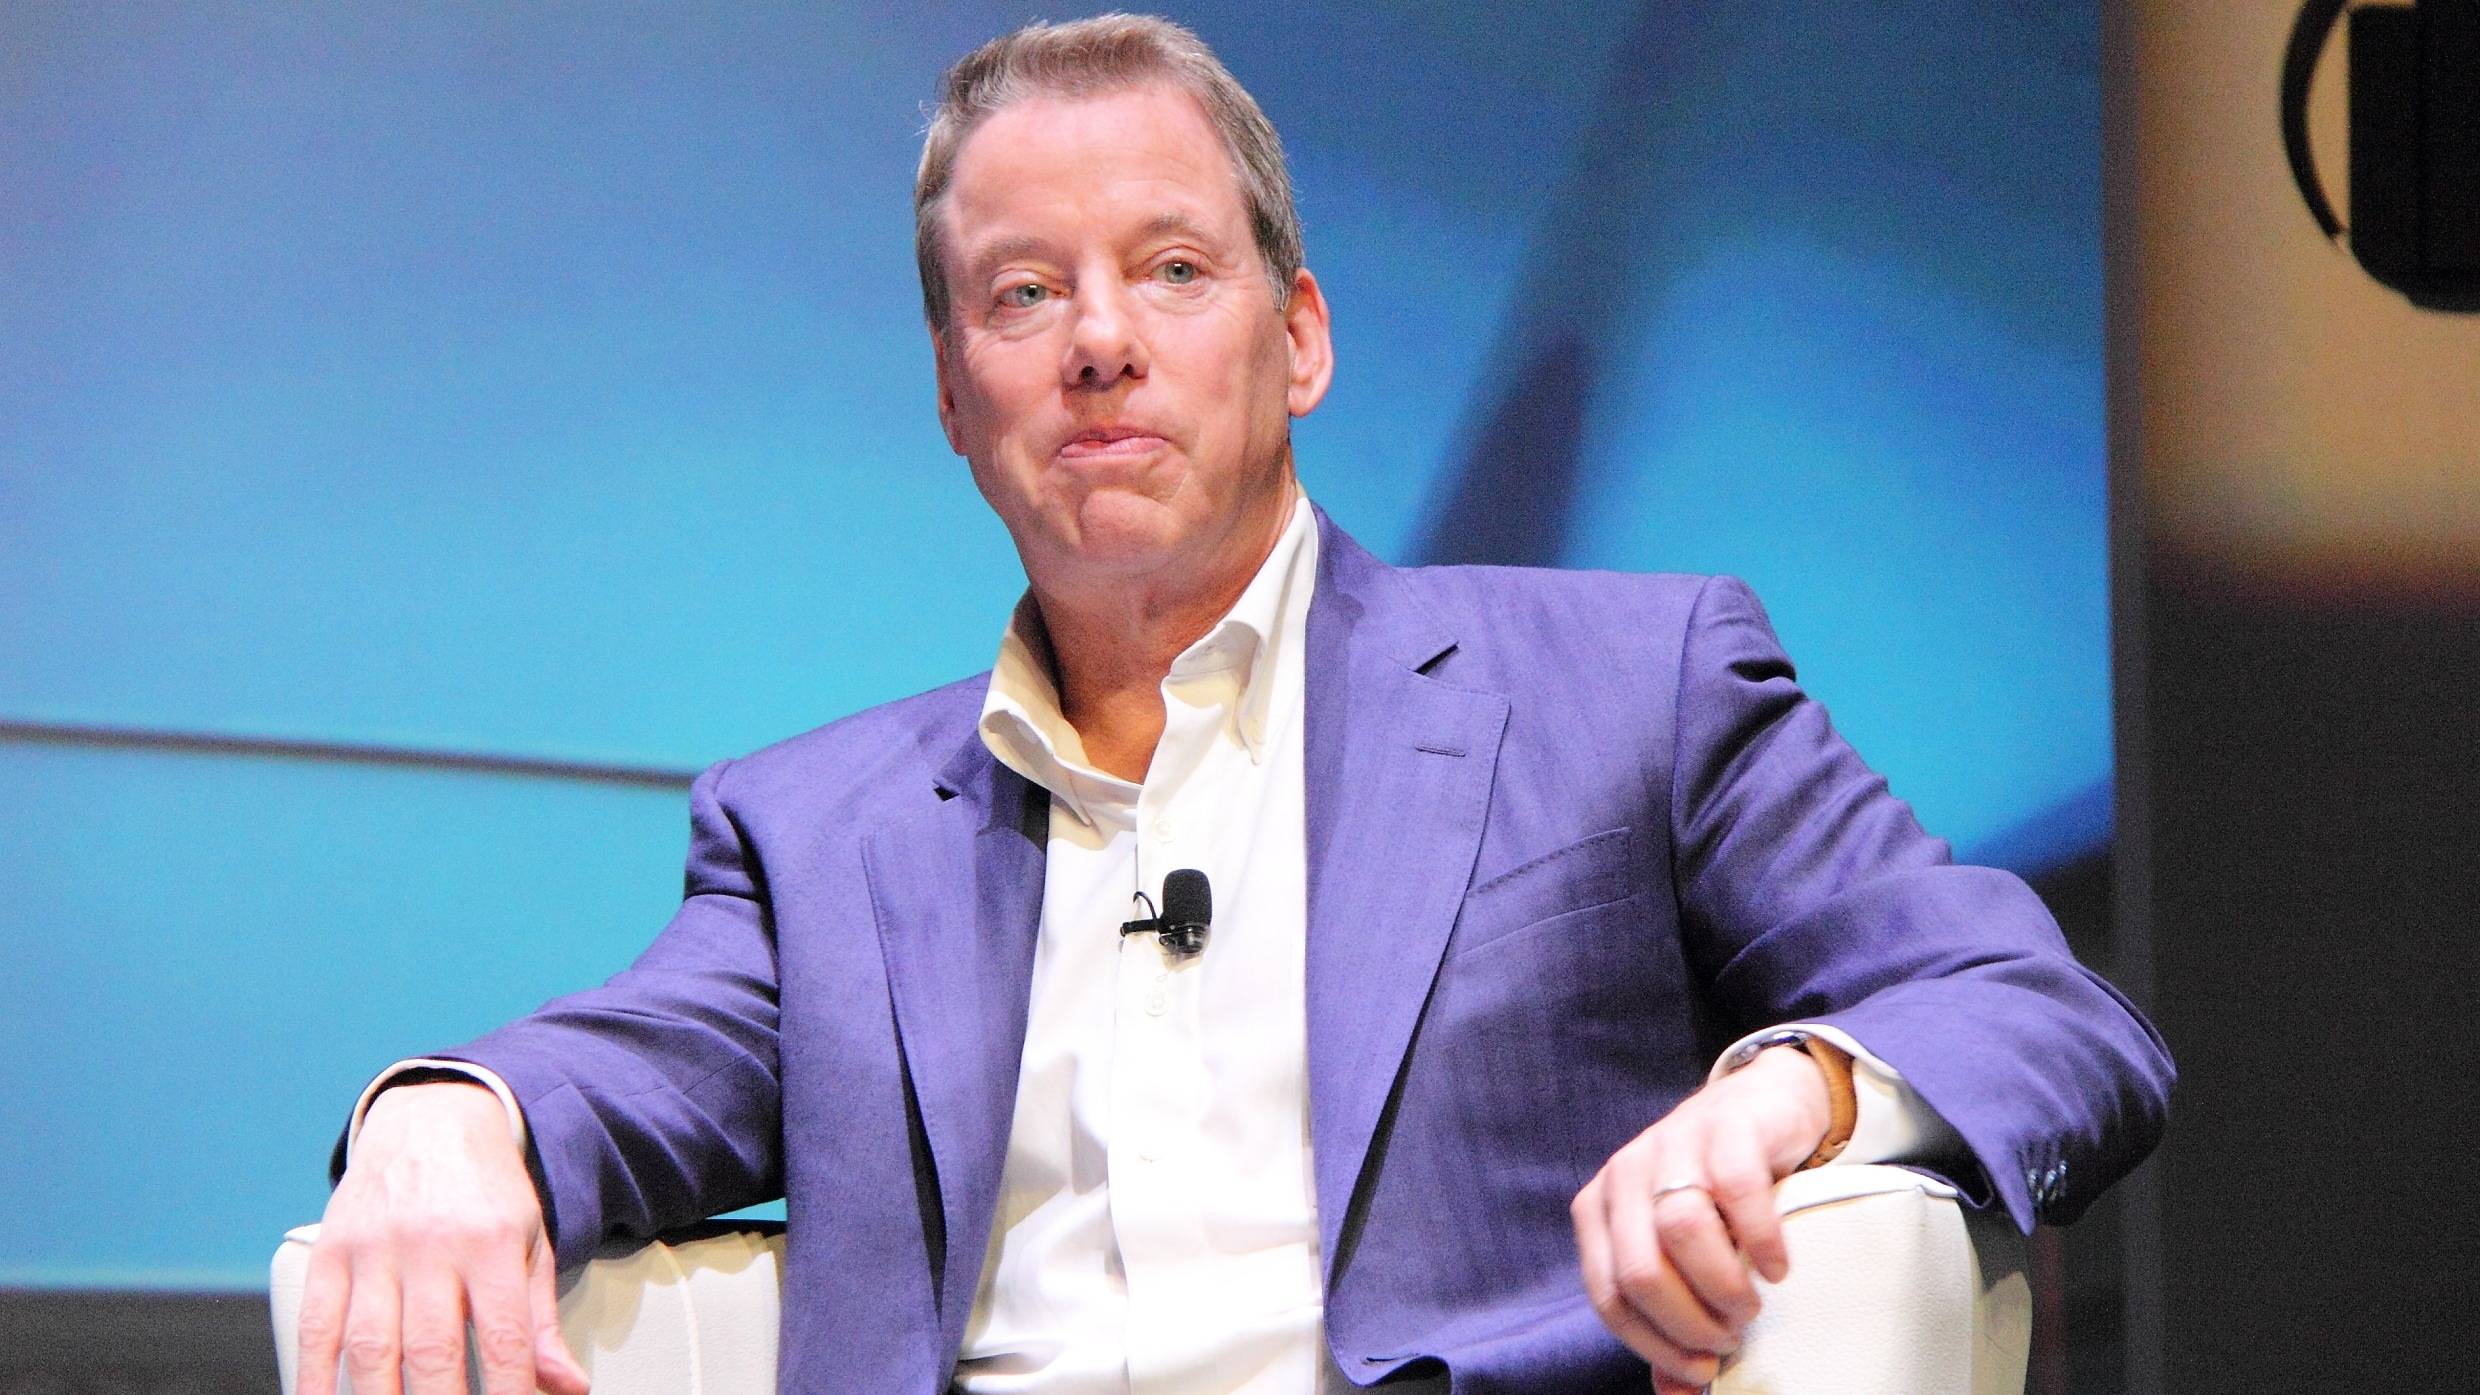 Bill Ford, Ford Motor Company, at the EY Entrepreneur of the Year conference in Monaco, June 4, 2015